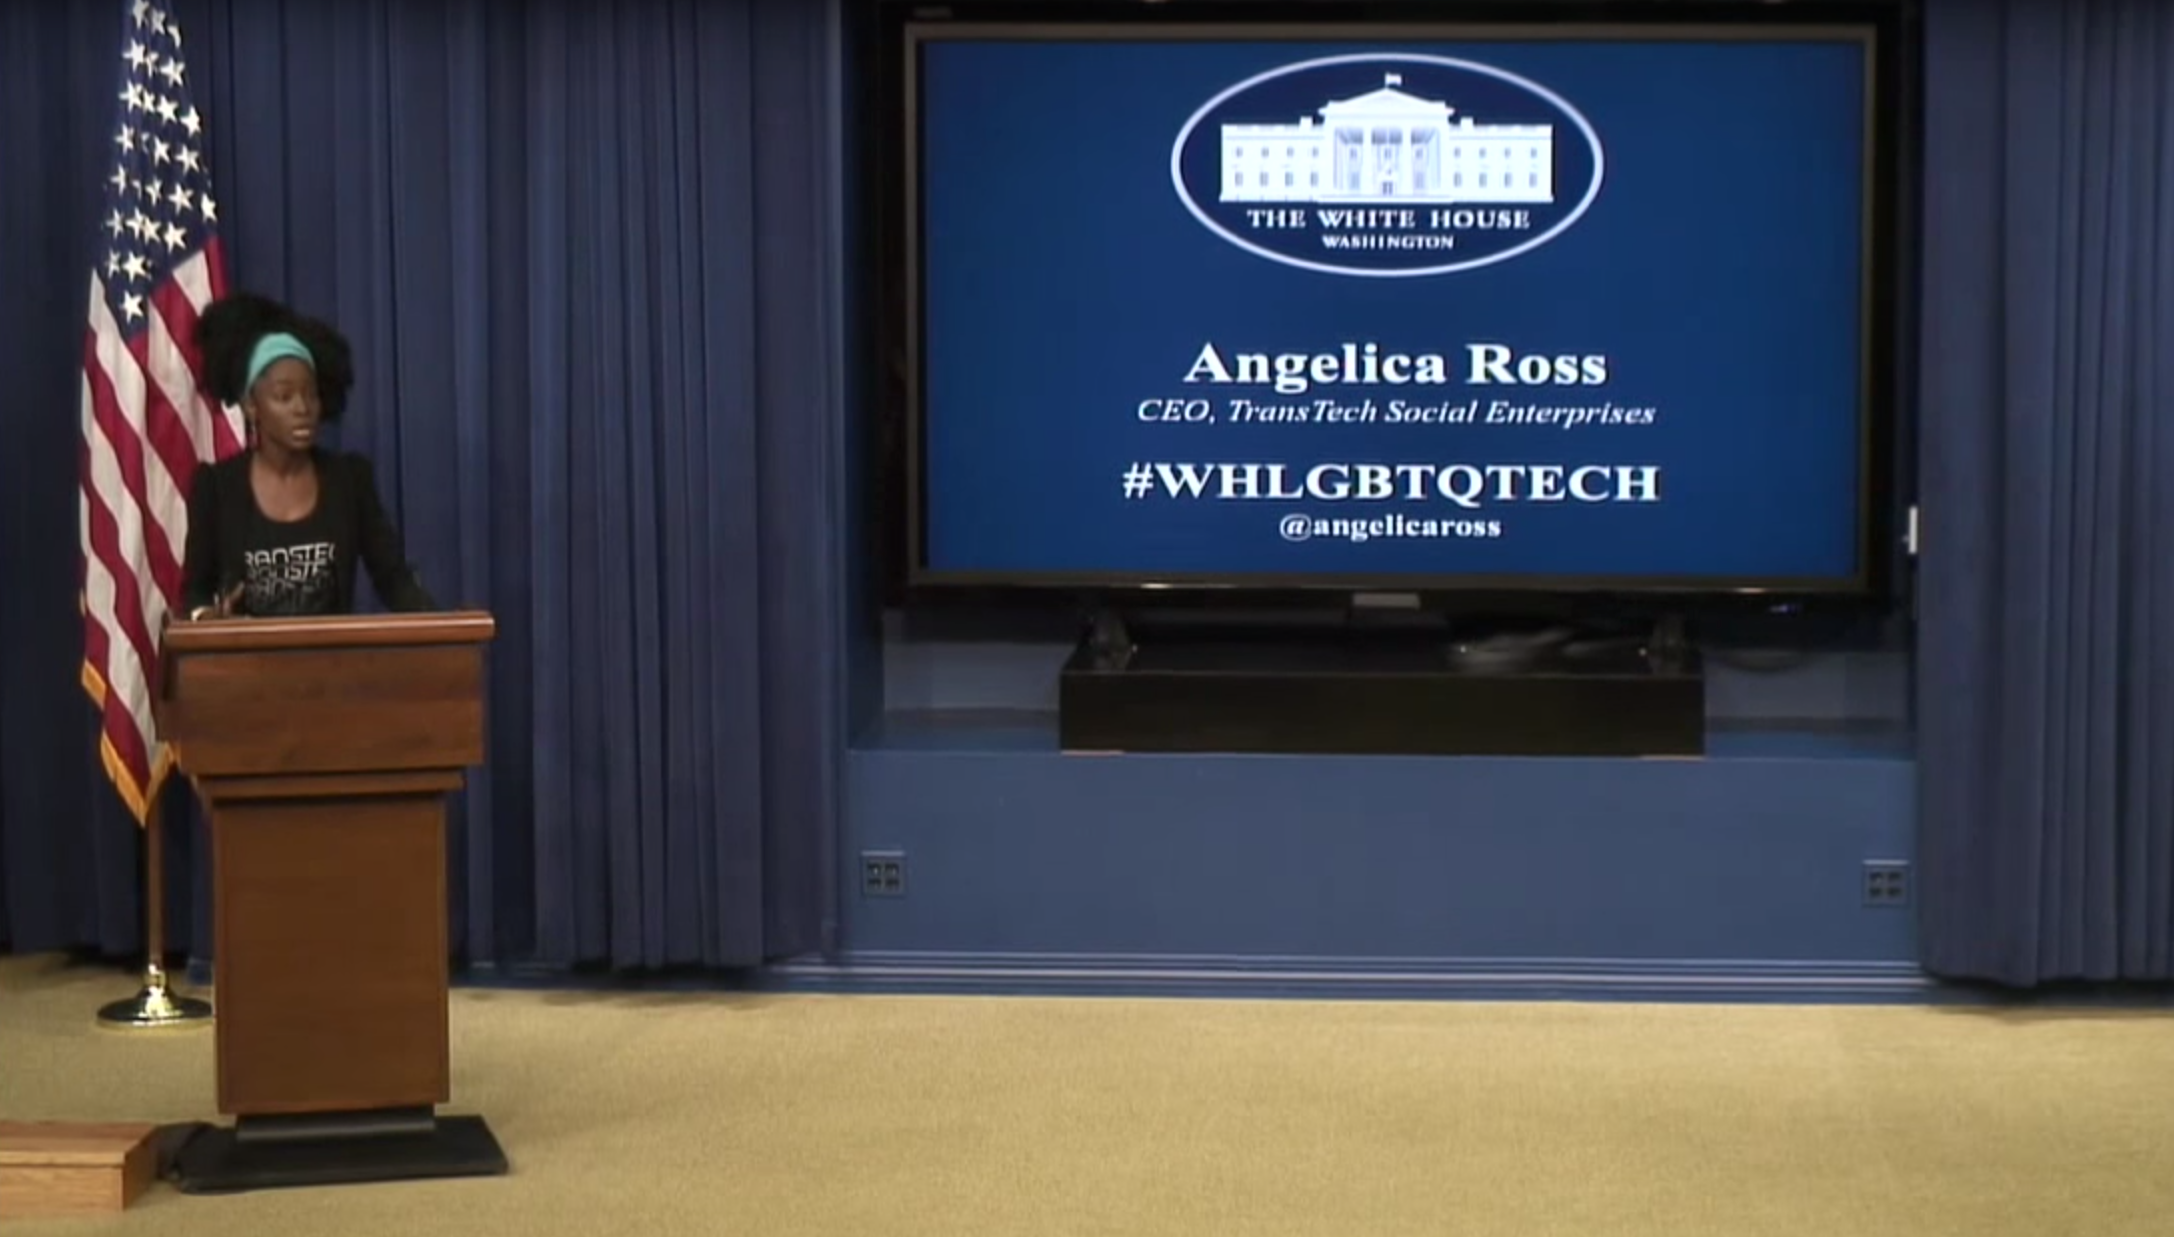 Angelica Ross at the White House LGBTQ Tech and Innovation Summit in August 2015